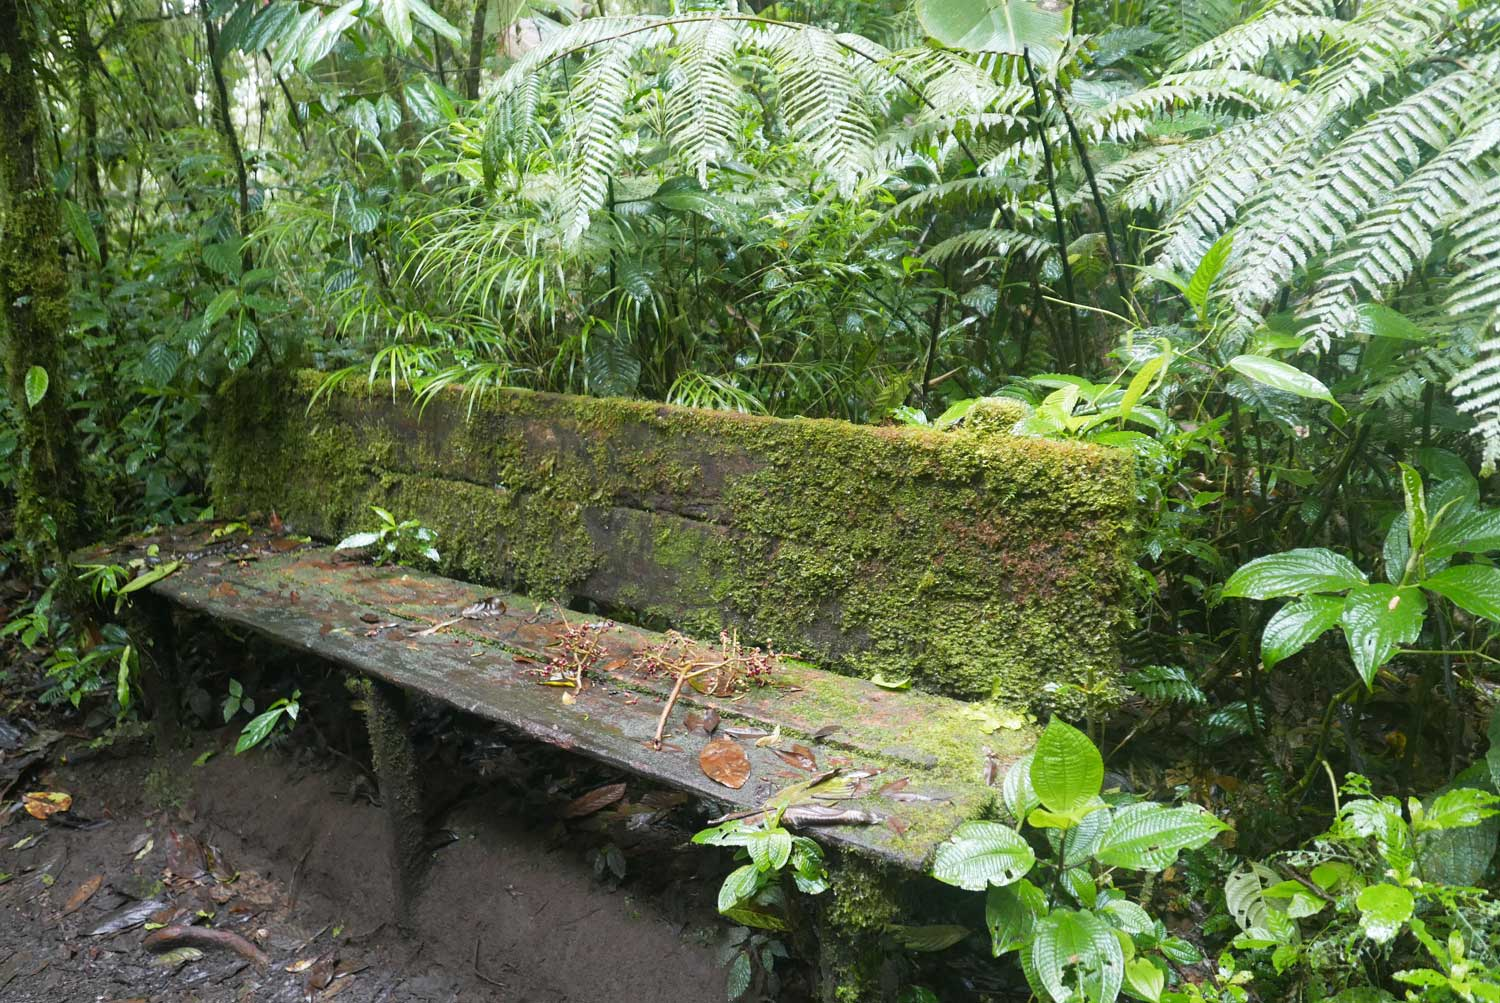 One of the few benches to rest in Santa Elena cloud forest